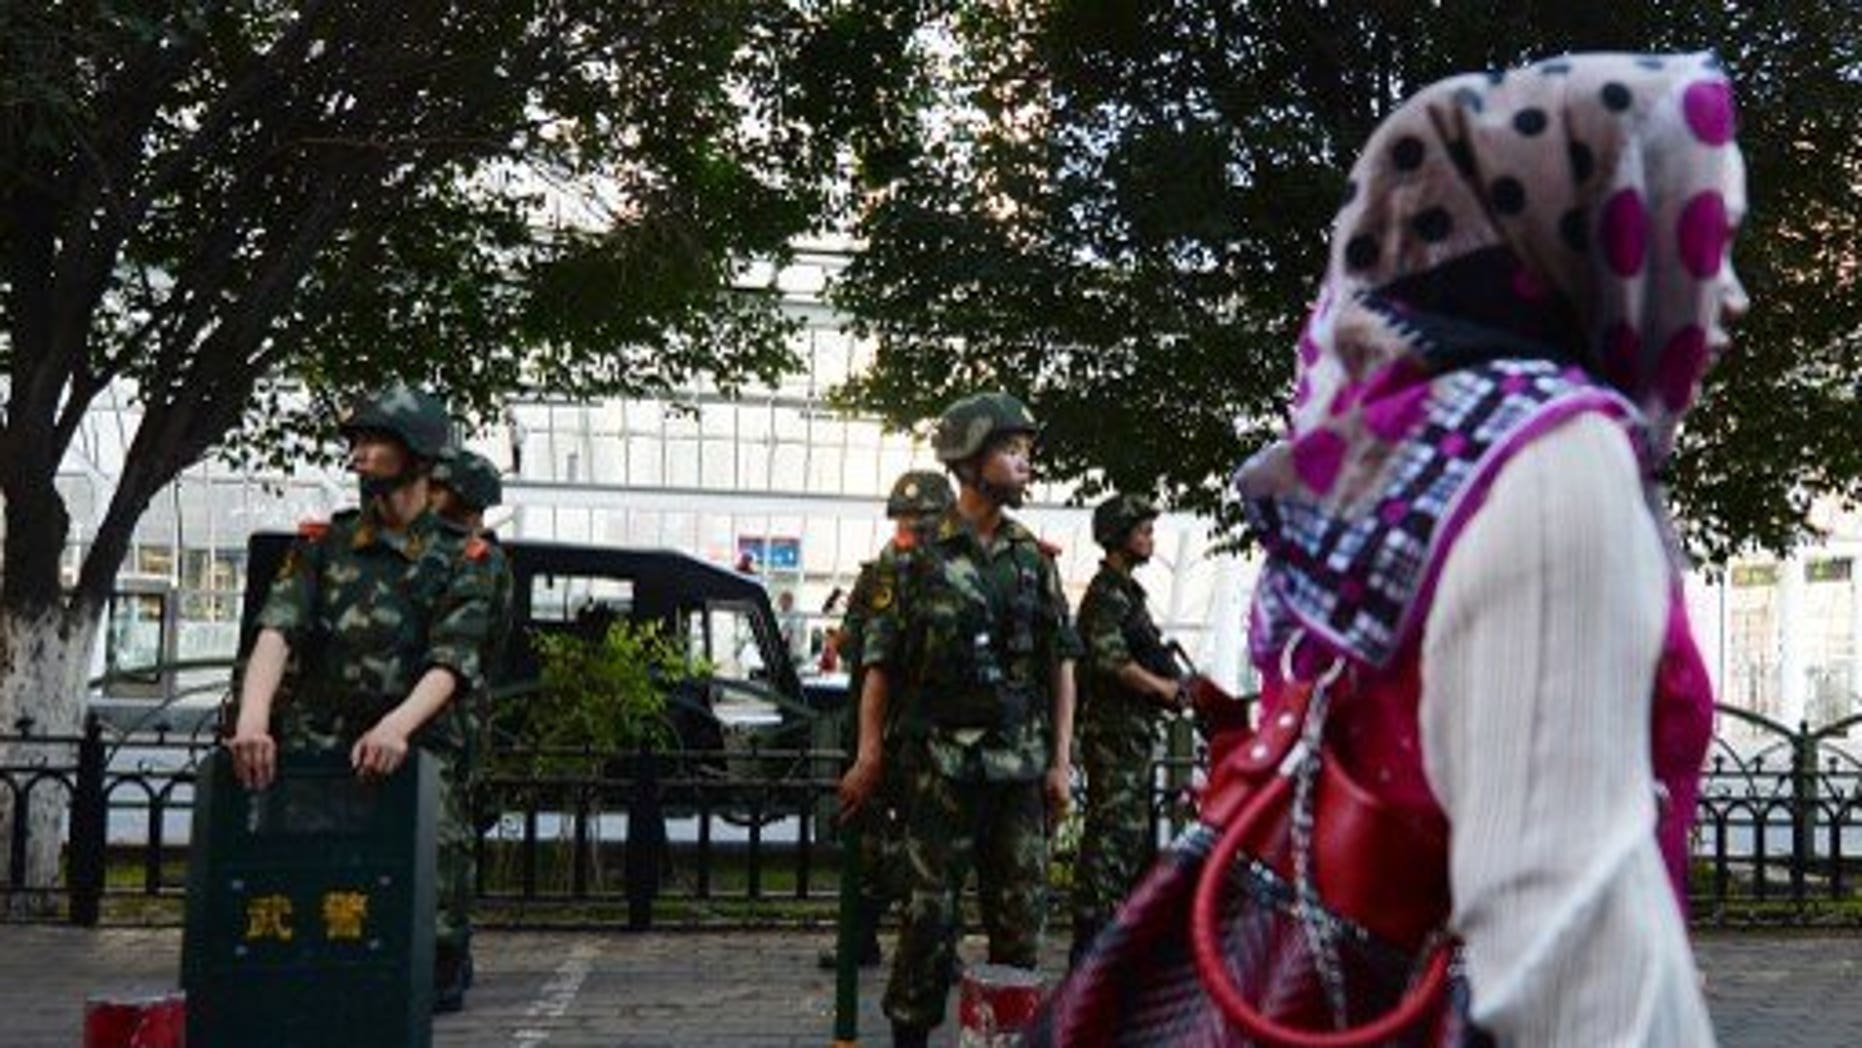 Chinese paramilitary police stand guard in the Muslim Uighur minority area of Urumqi, Xinjiang Province on June 30, 2013. Human rights conditions in China are worsening, a senior US official said Friday, accusing Beijing of harassing activists' family members and repressing ethnic and religious minorities.